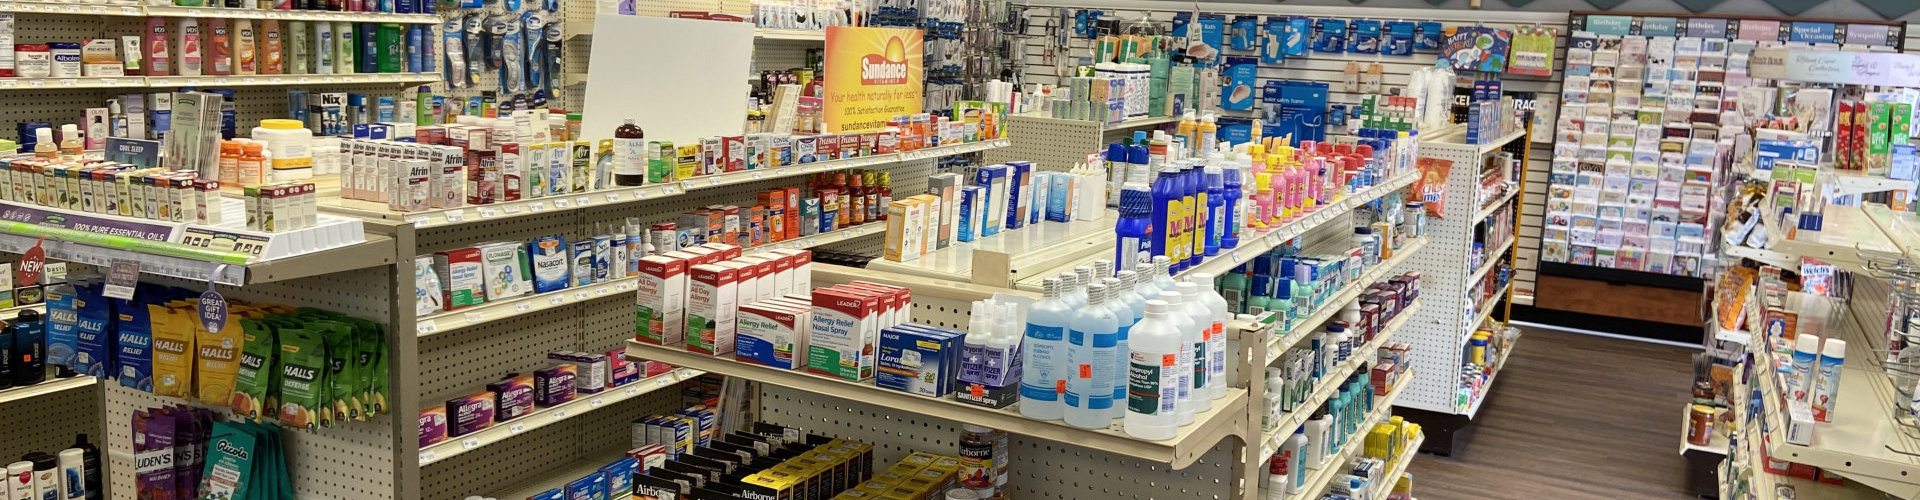 pharmacy store filled with products